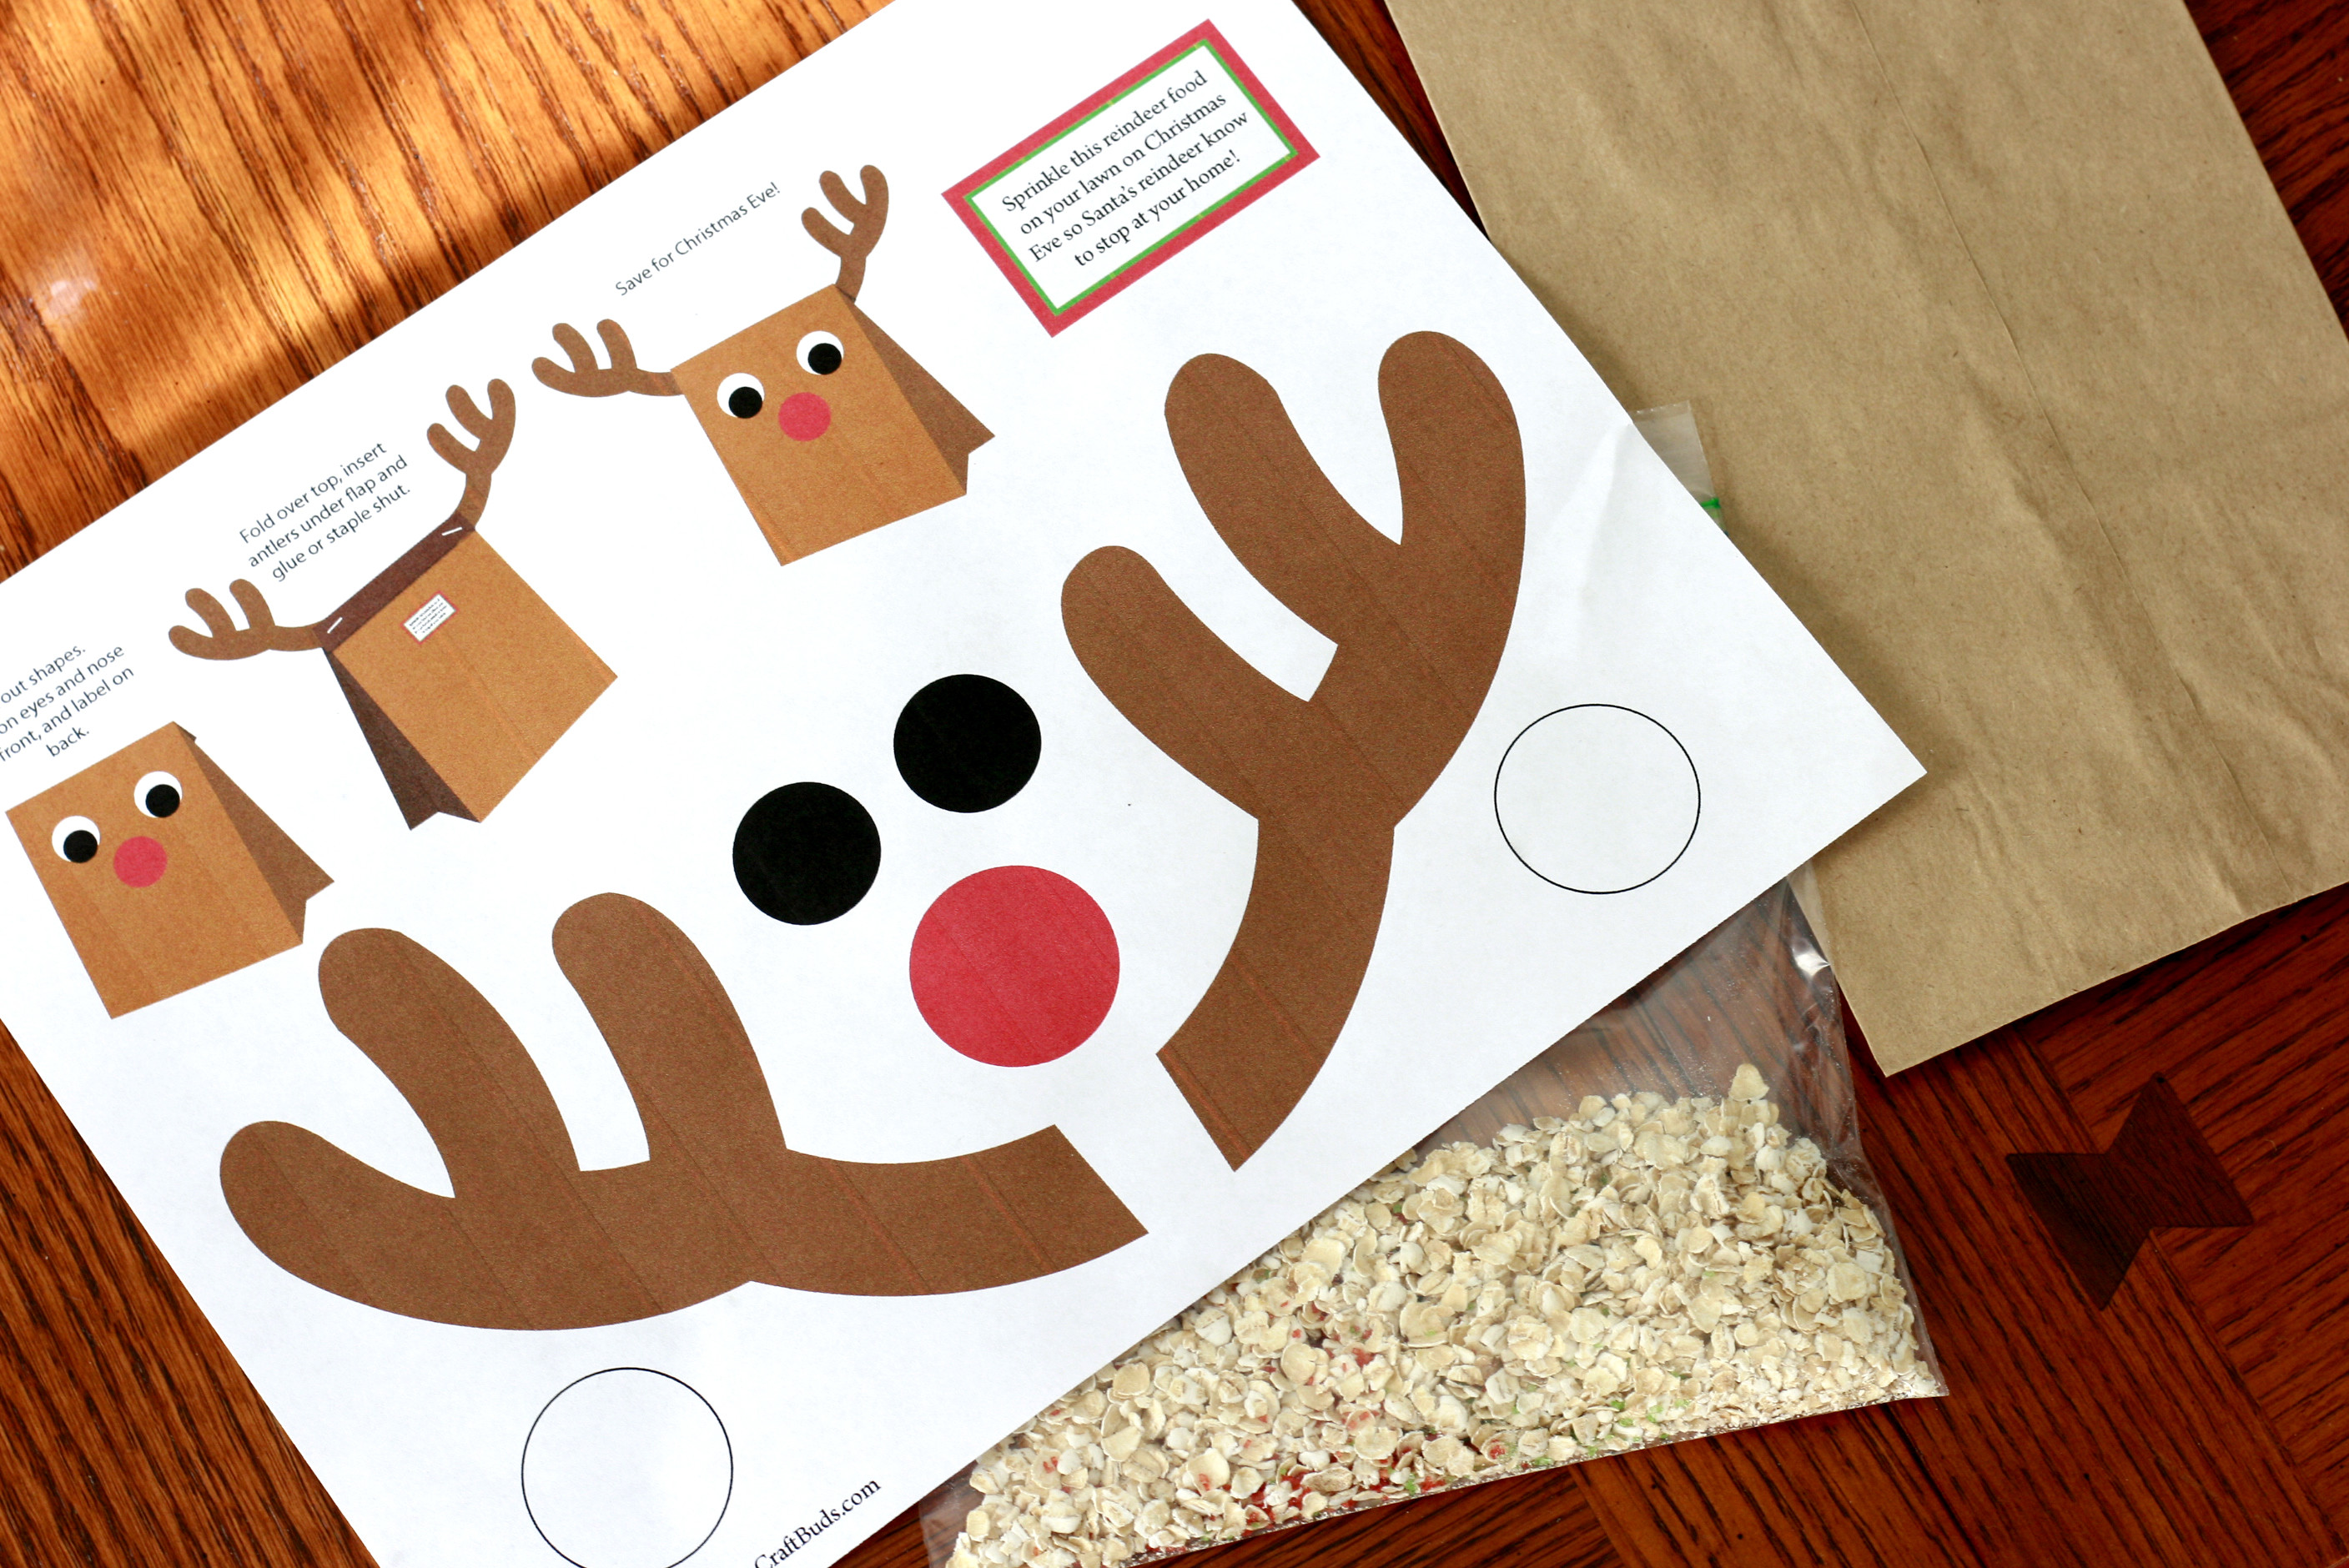 Best ideas about Crafts For Christmas Gifts . Save or Pin Last Minute Christmas Gifts for Kids and Adults Now.